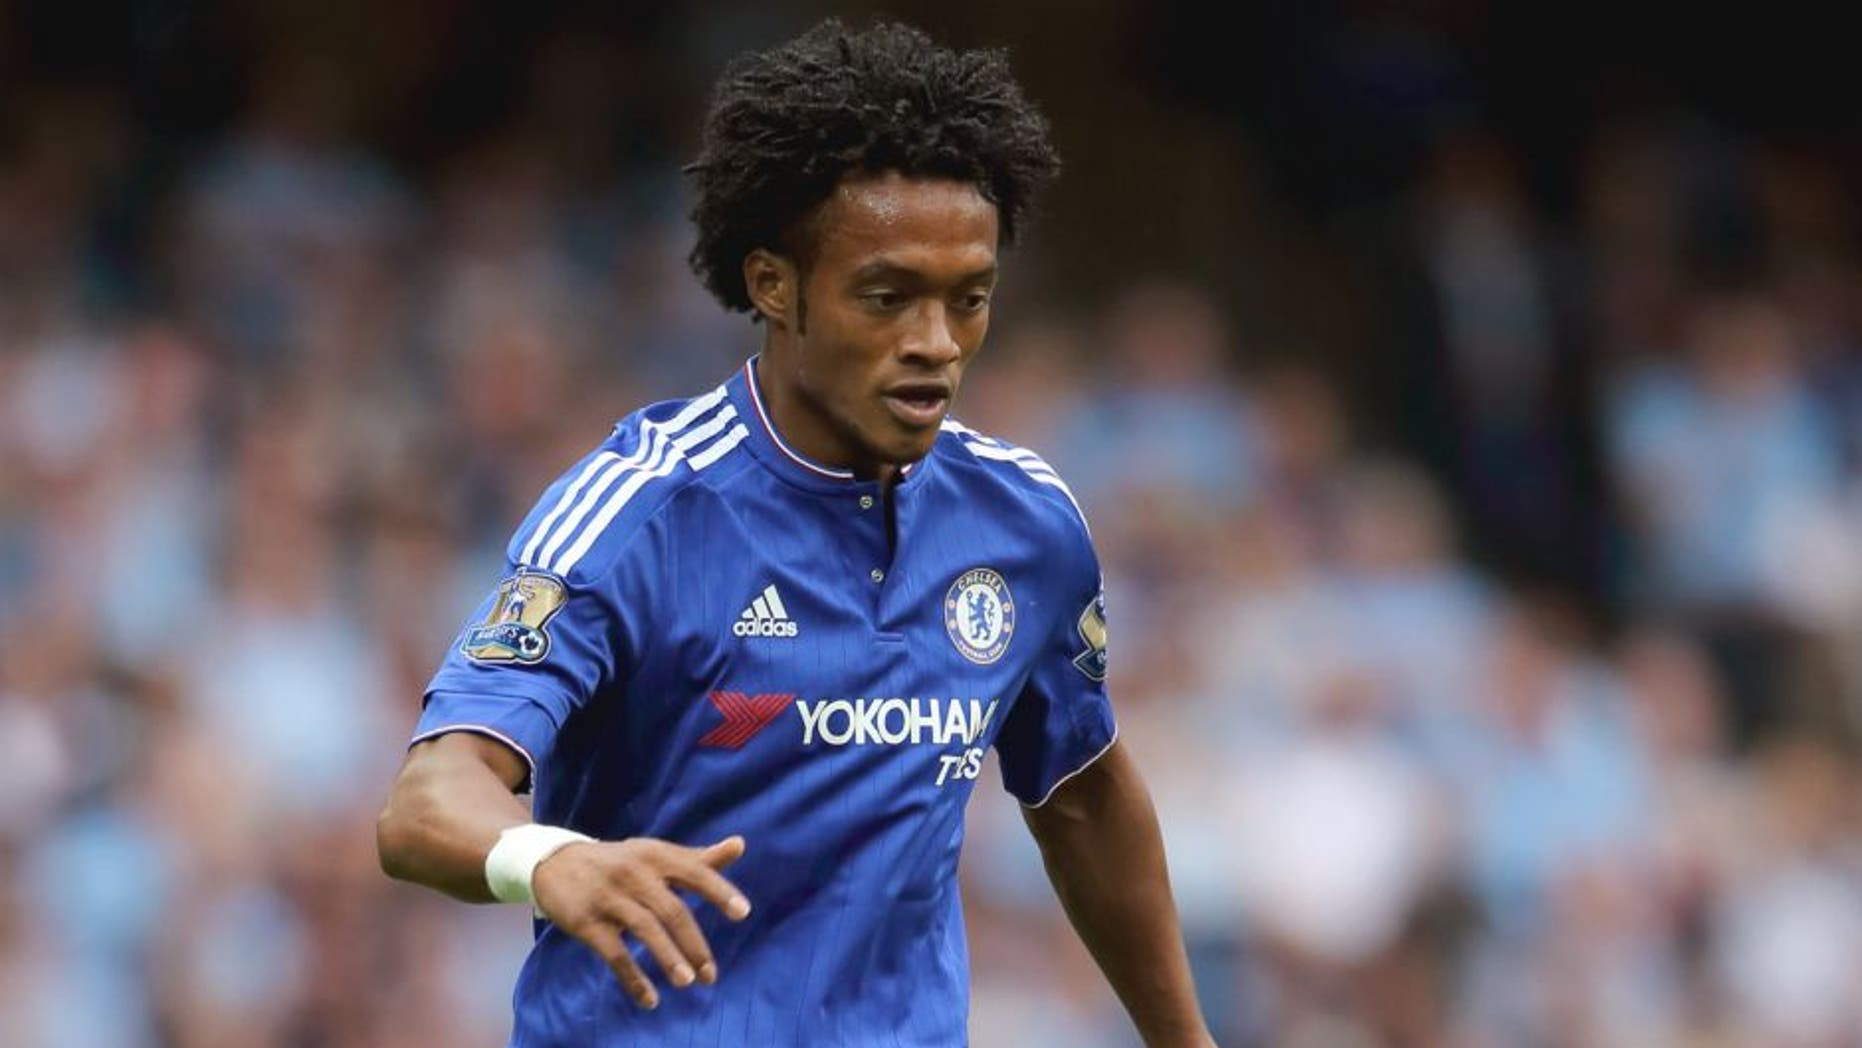 MANCHESTER, ENGLAND - AUGUST 16: Juan Cuadrado of Chelsea during the Barclays Premier League match between Manchester City and Chelsea at the Etihad Stadium on August 16, 2015 in Manchester, England. (Photo by Matthew Ashton - AMA/Getty Images)